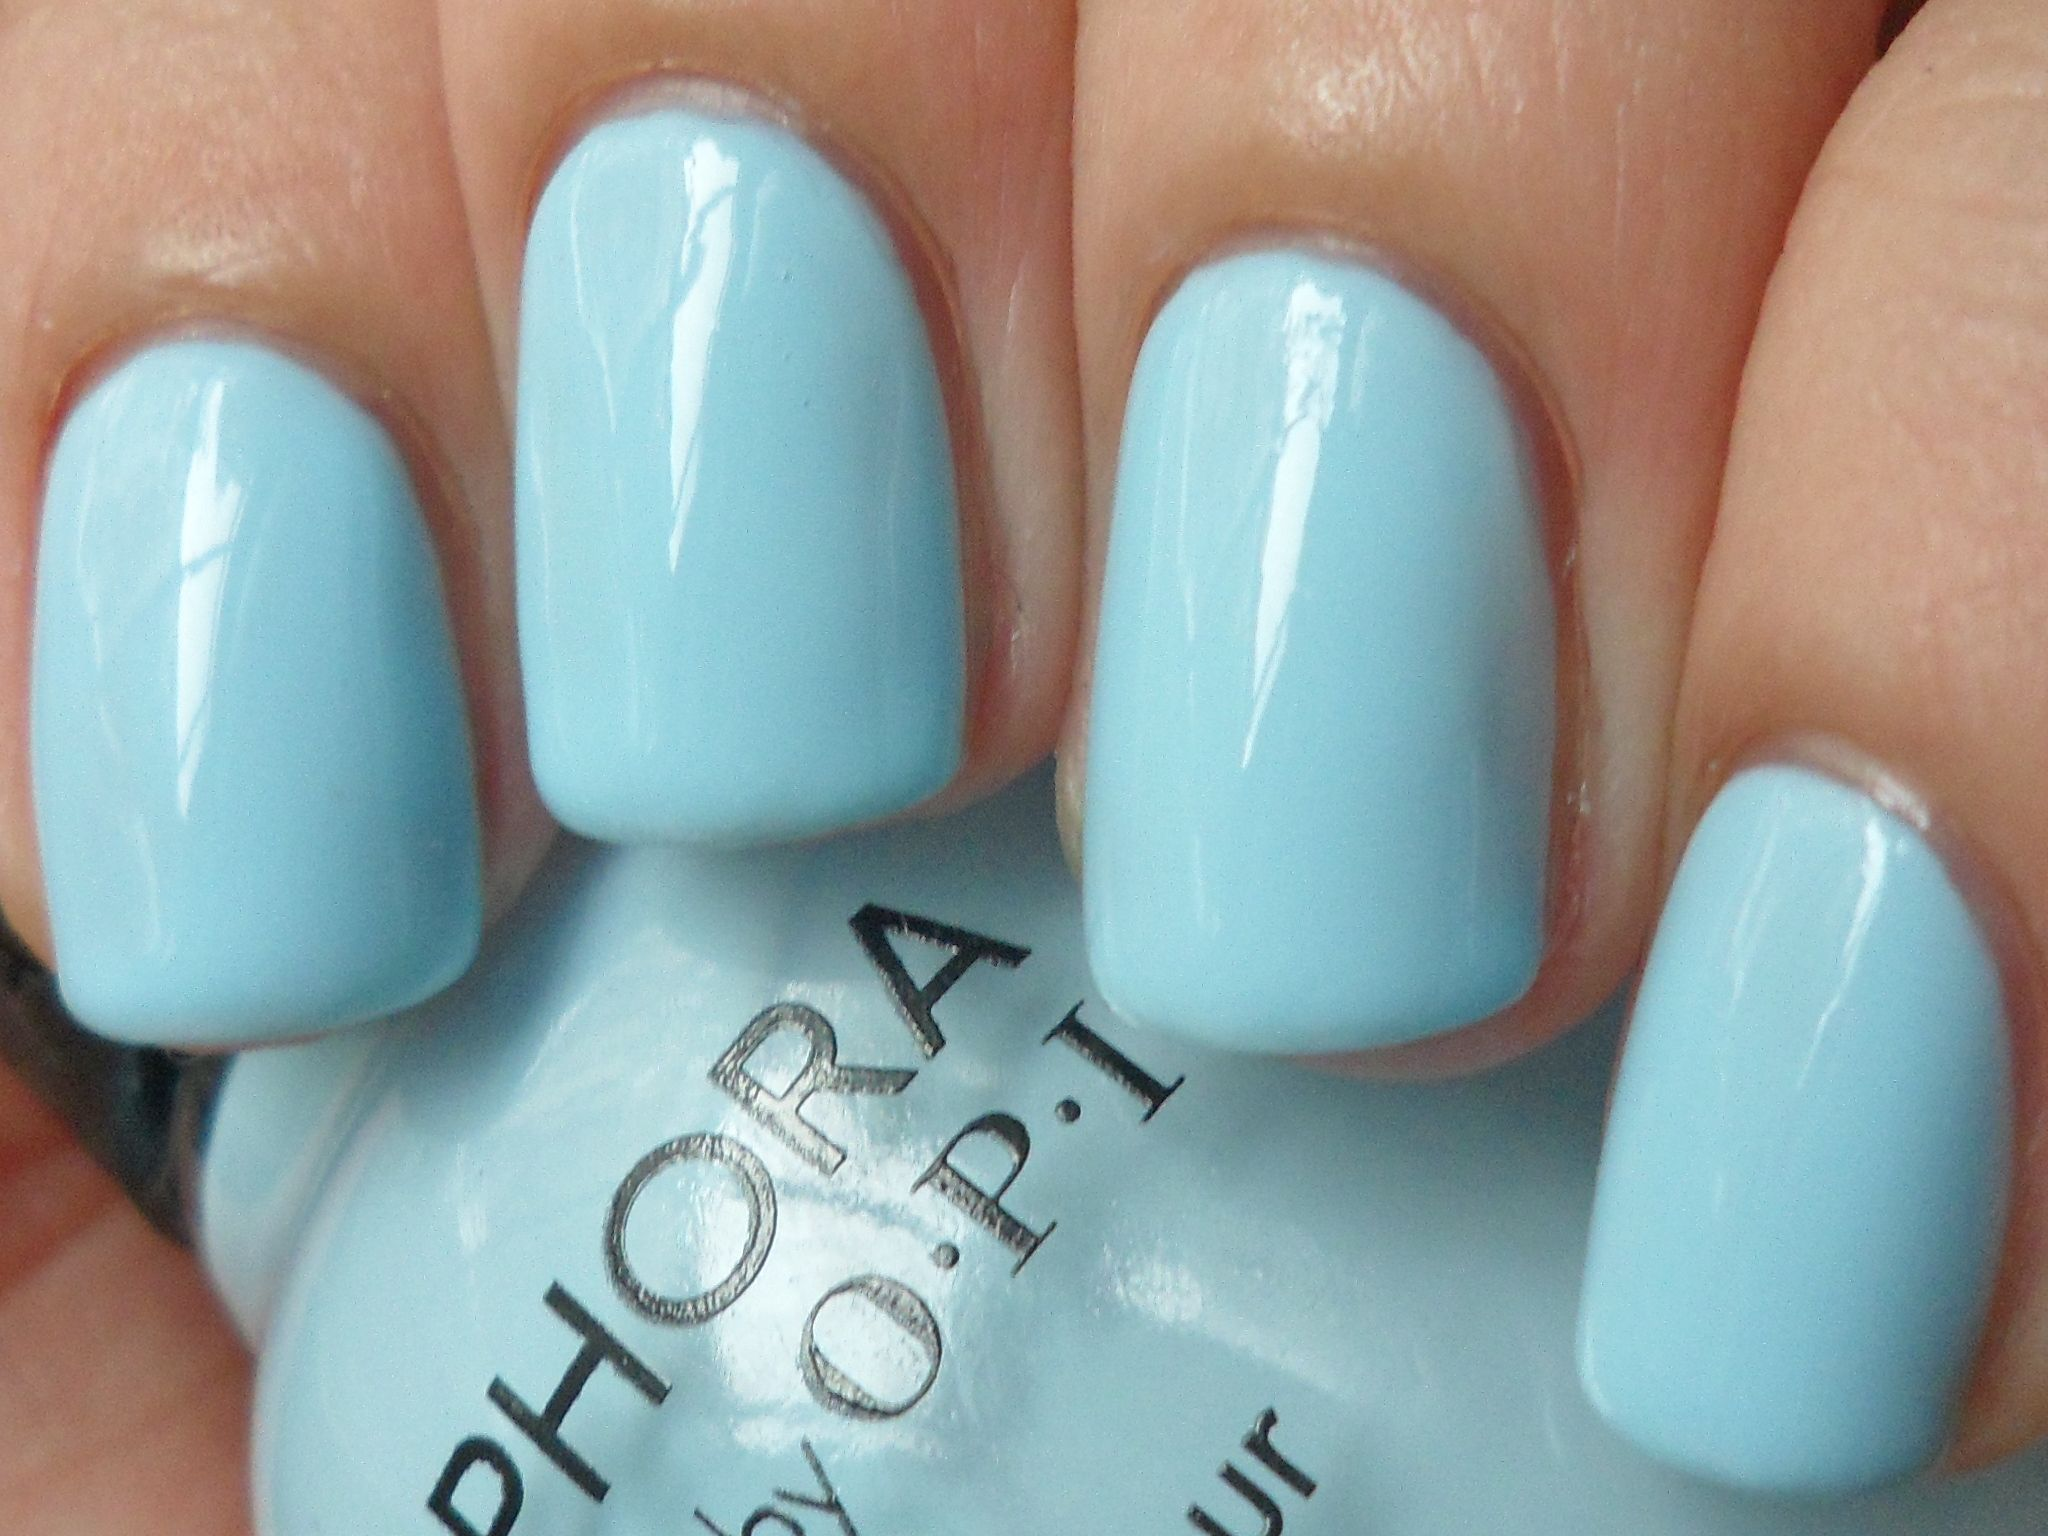 Tiffany nails! Sephora by OPI havana dreams